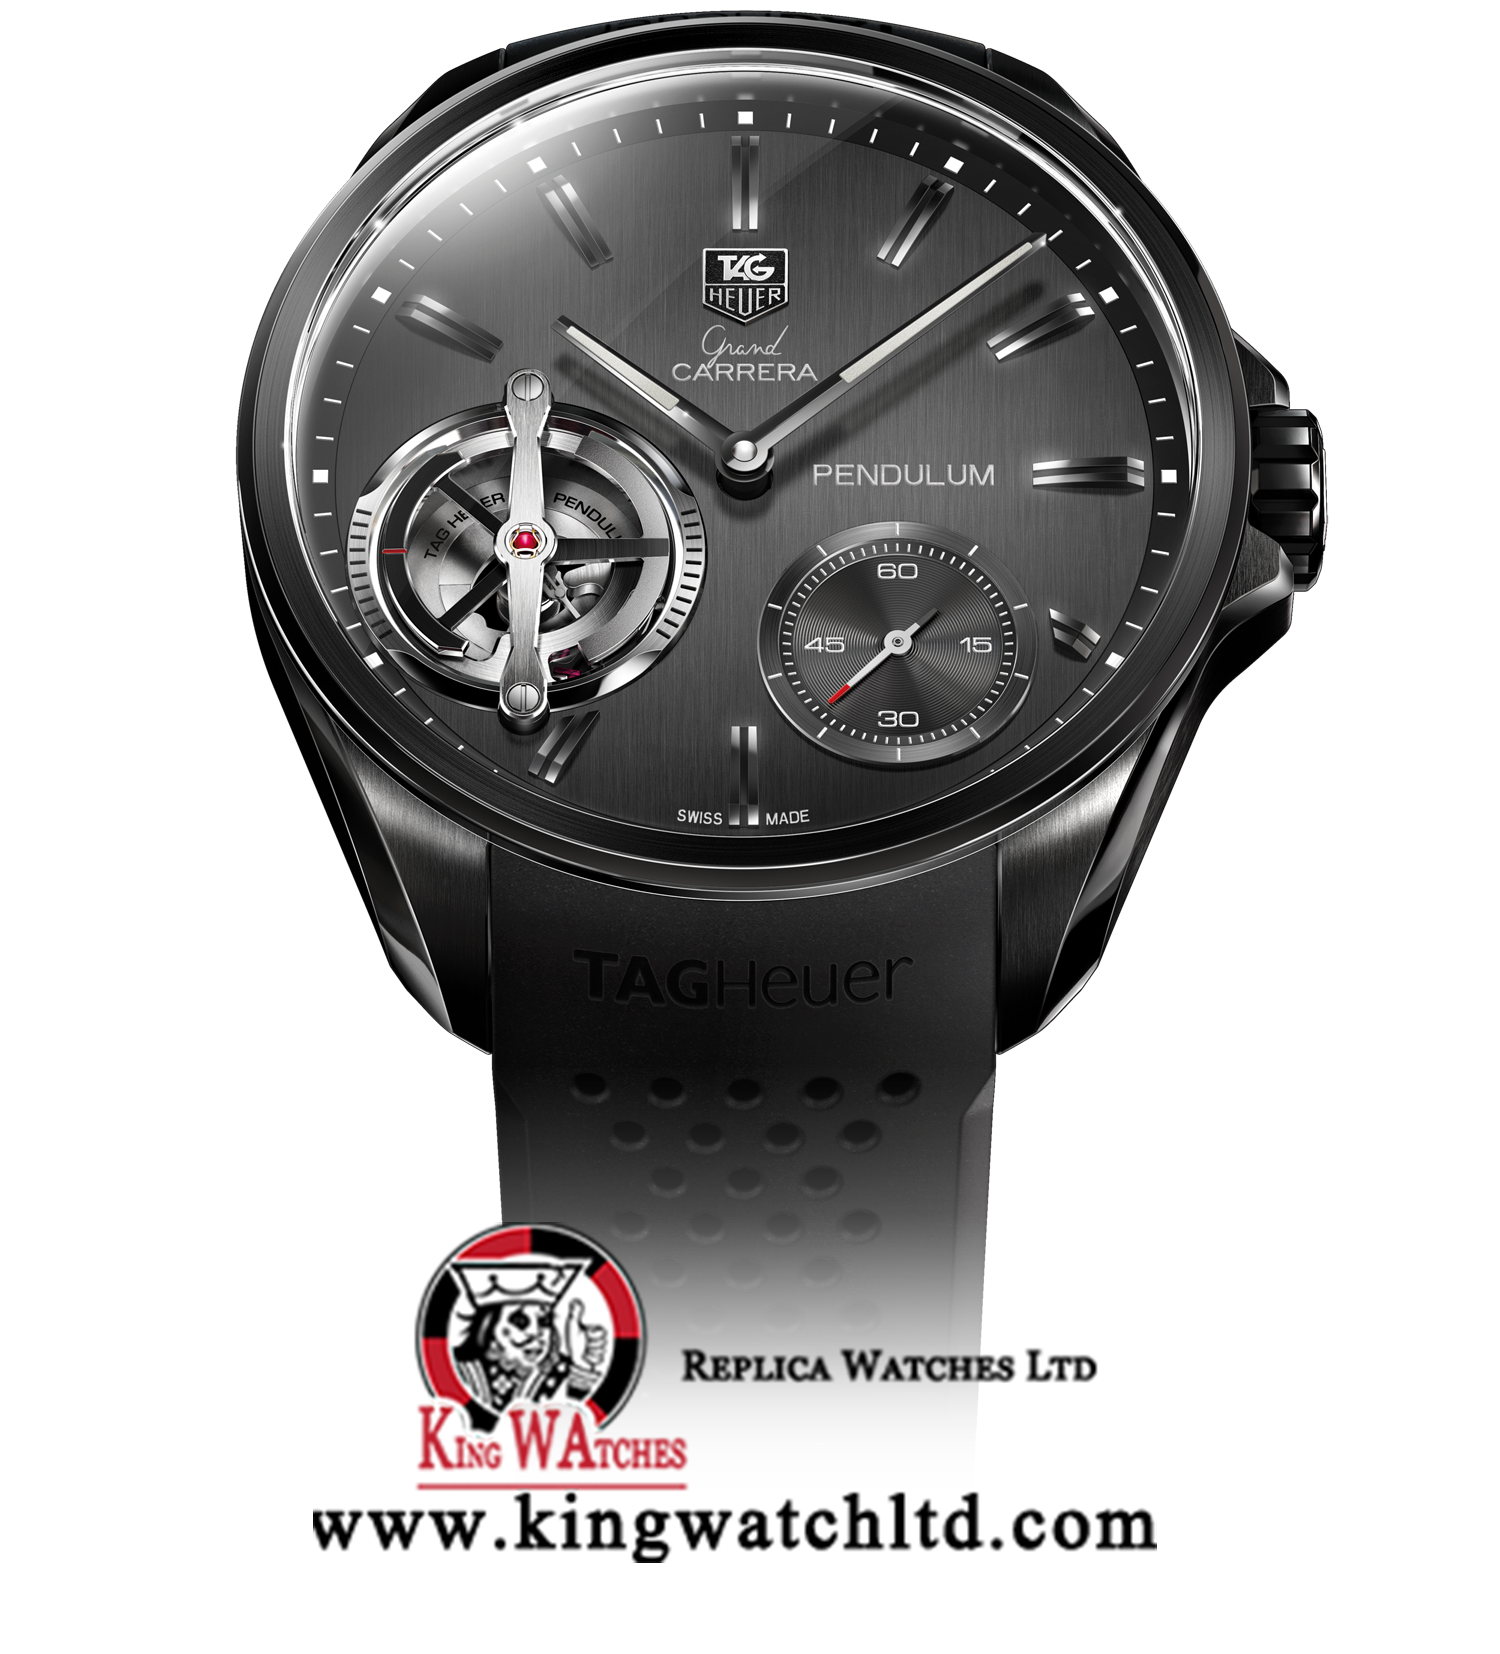 Tag Heuer Grand Carrera Pendulum 1